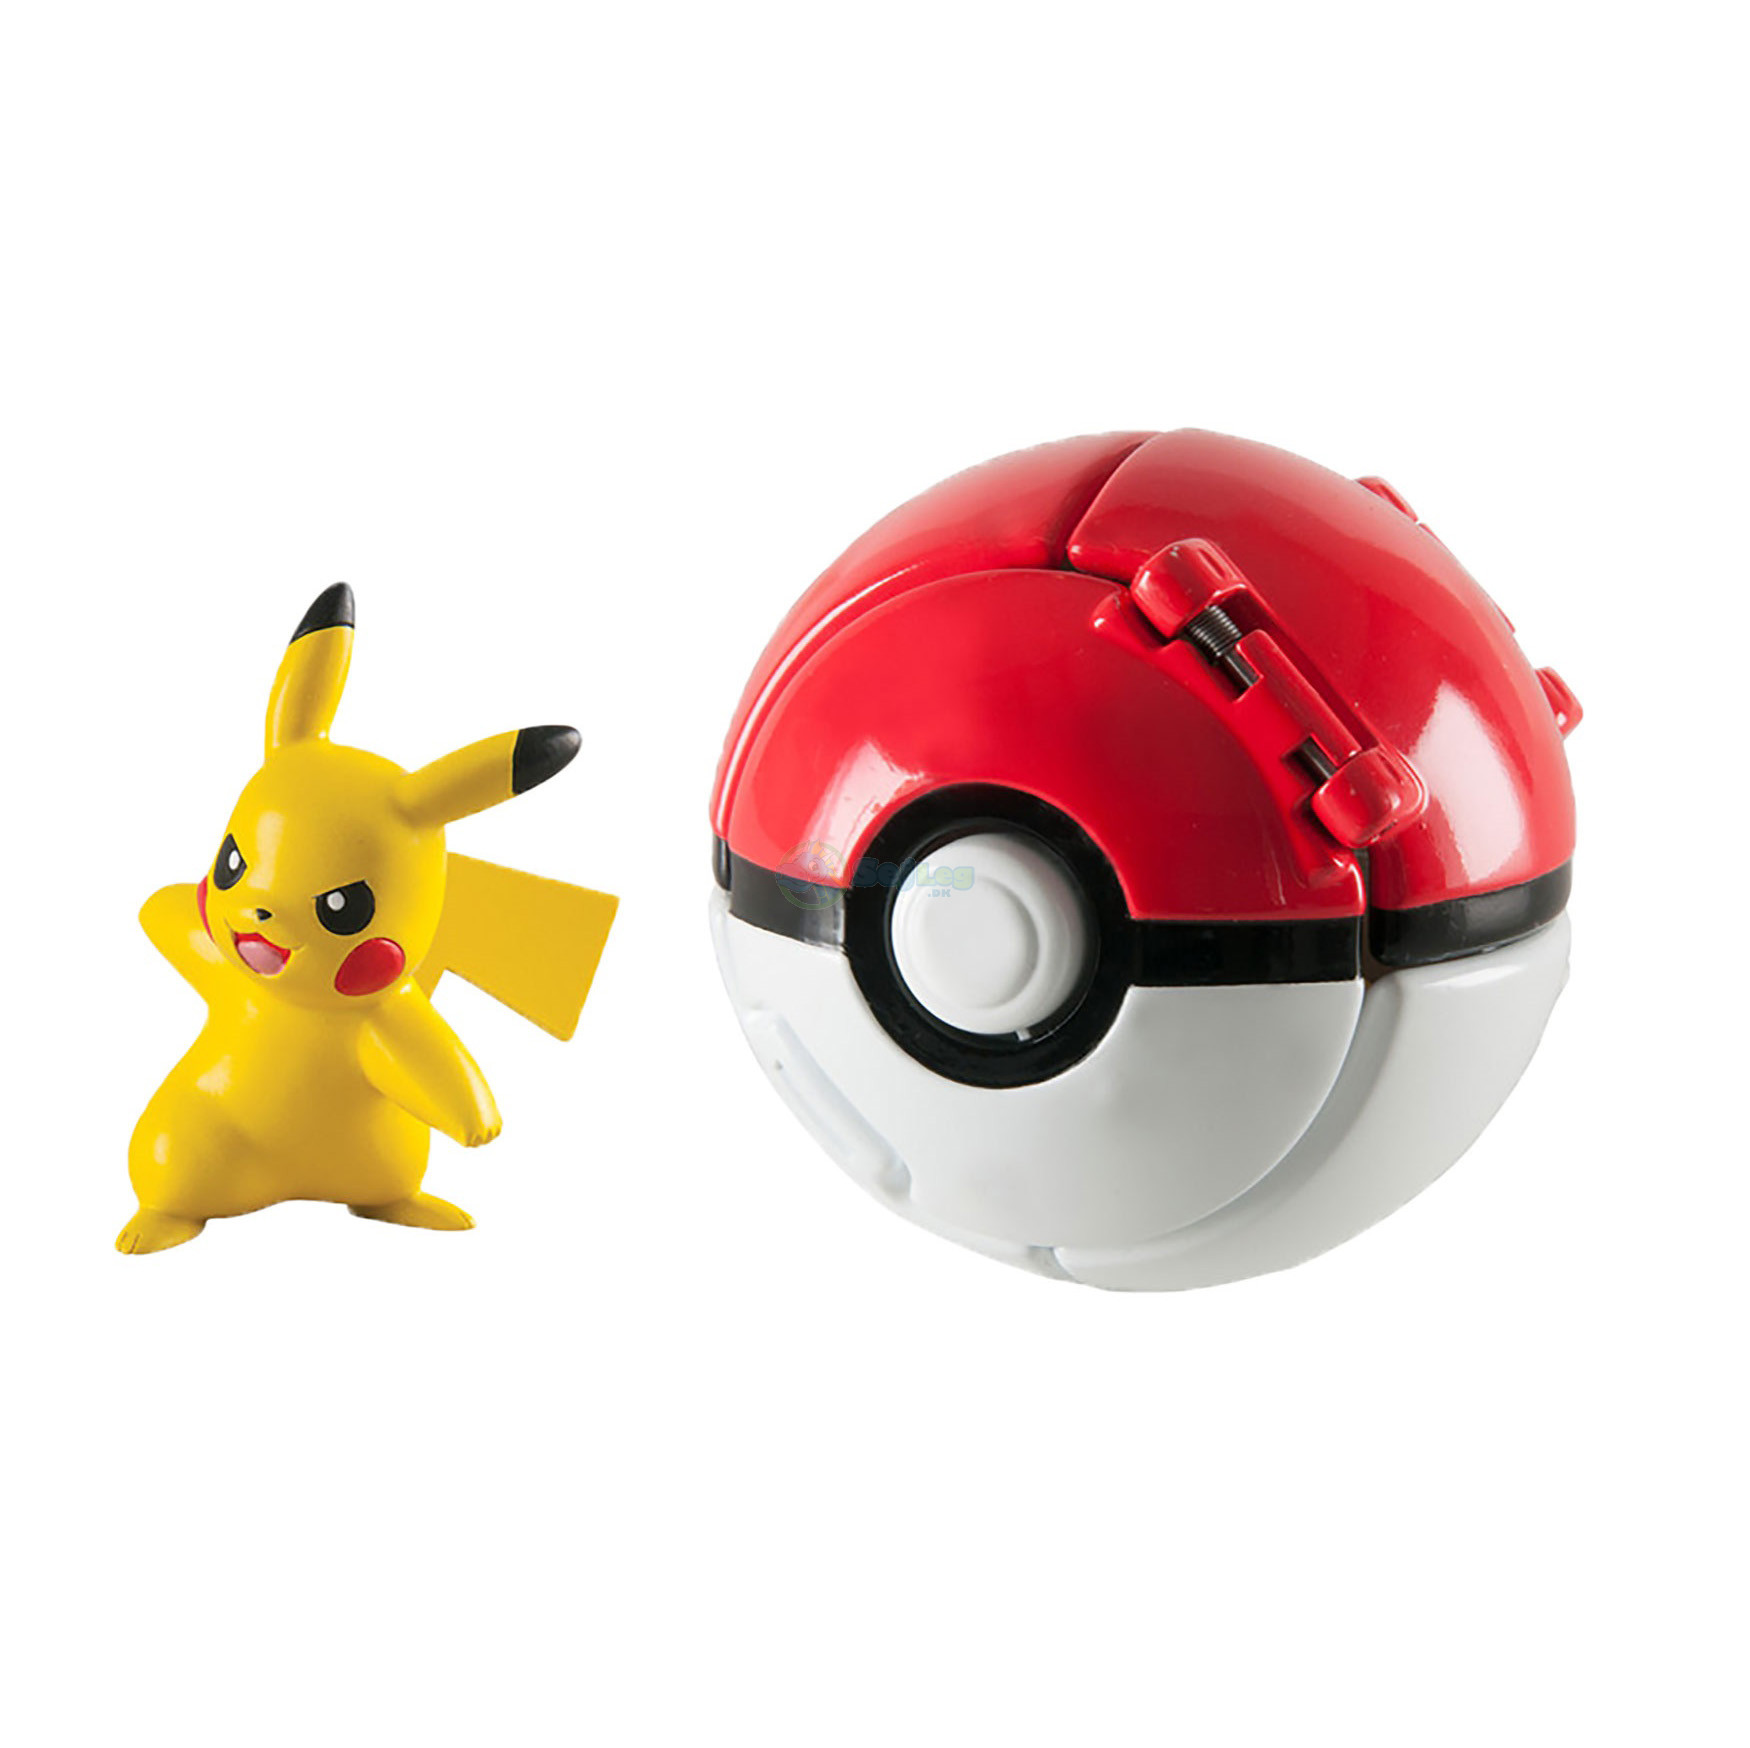 Pokemon Pokeball inkl. figur - Pikachu